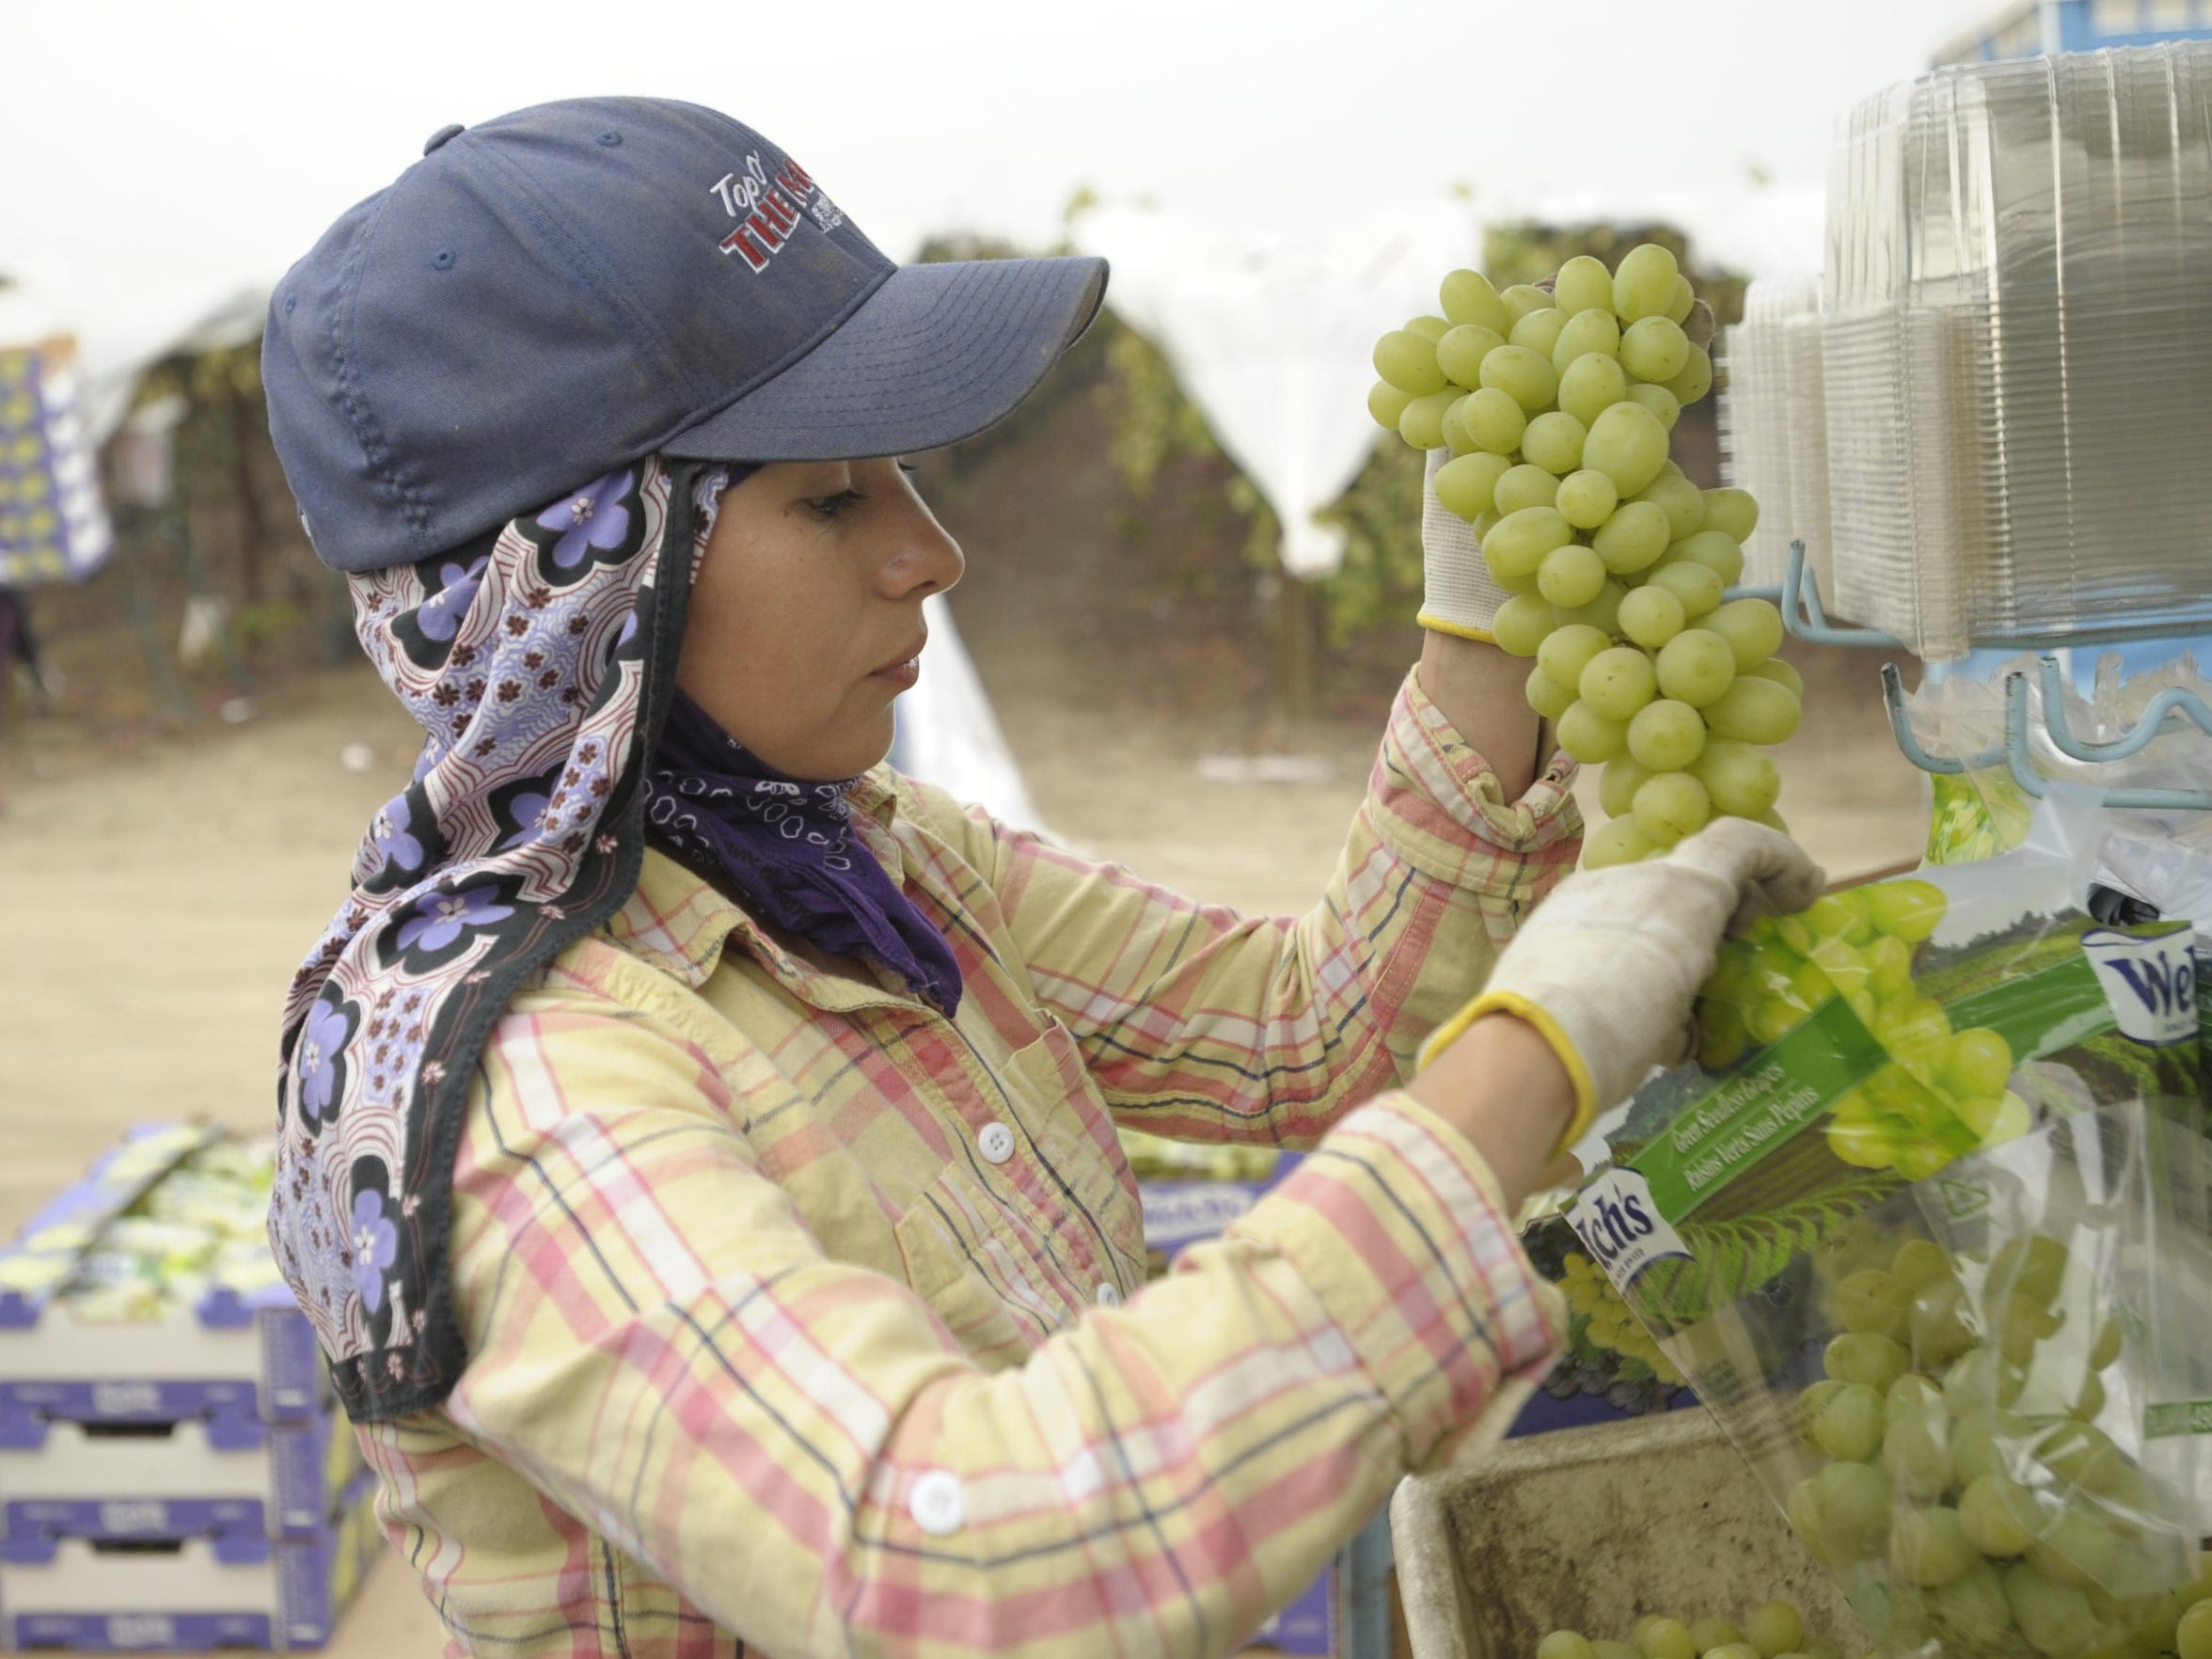 In this file photo, Janet Cuevas of Tulare bags freshly-picked grapes at Sundale Vineyards near Tulare.